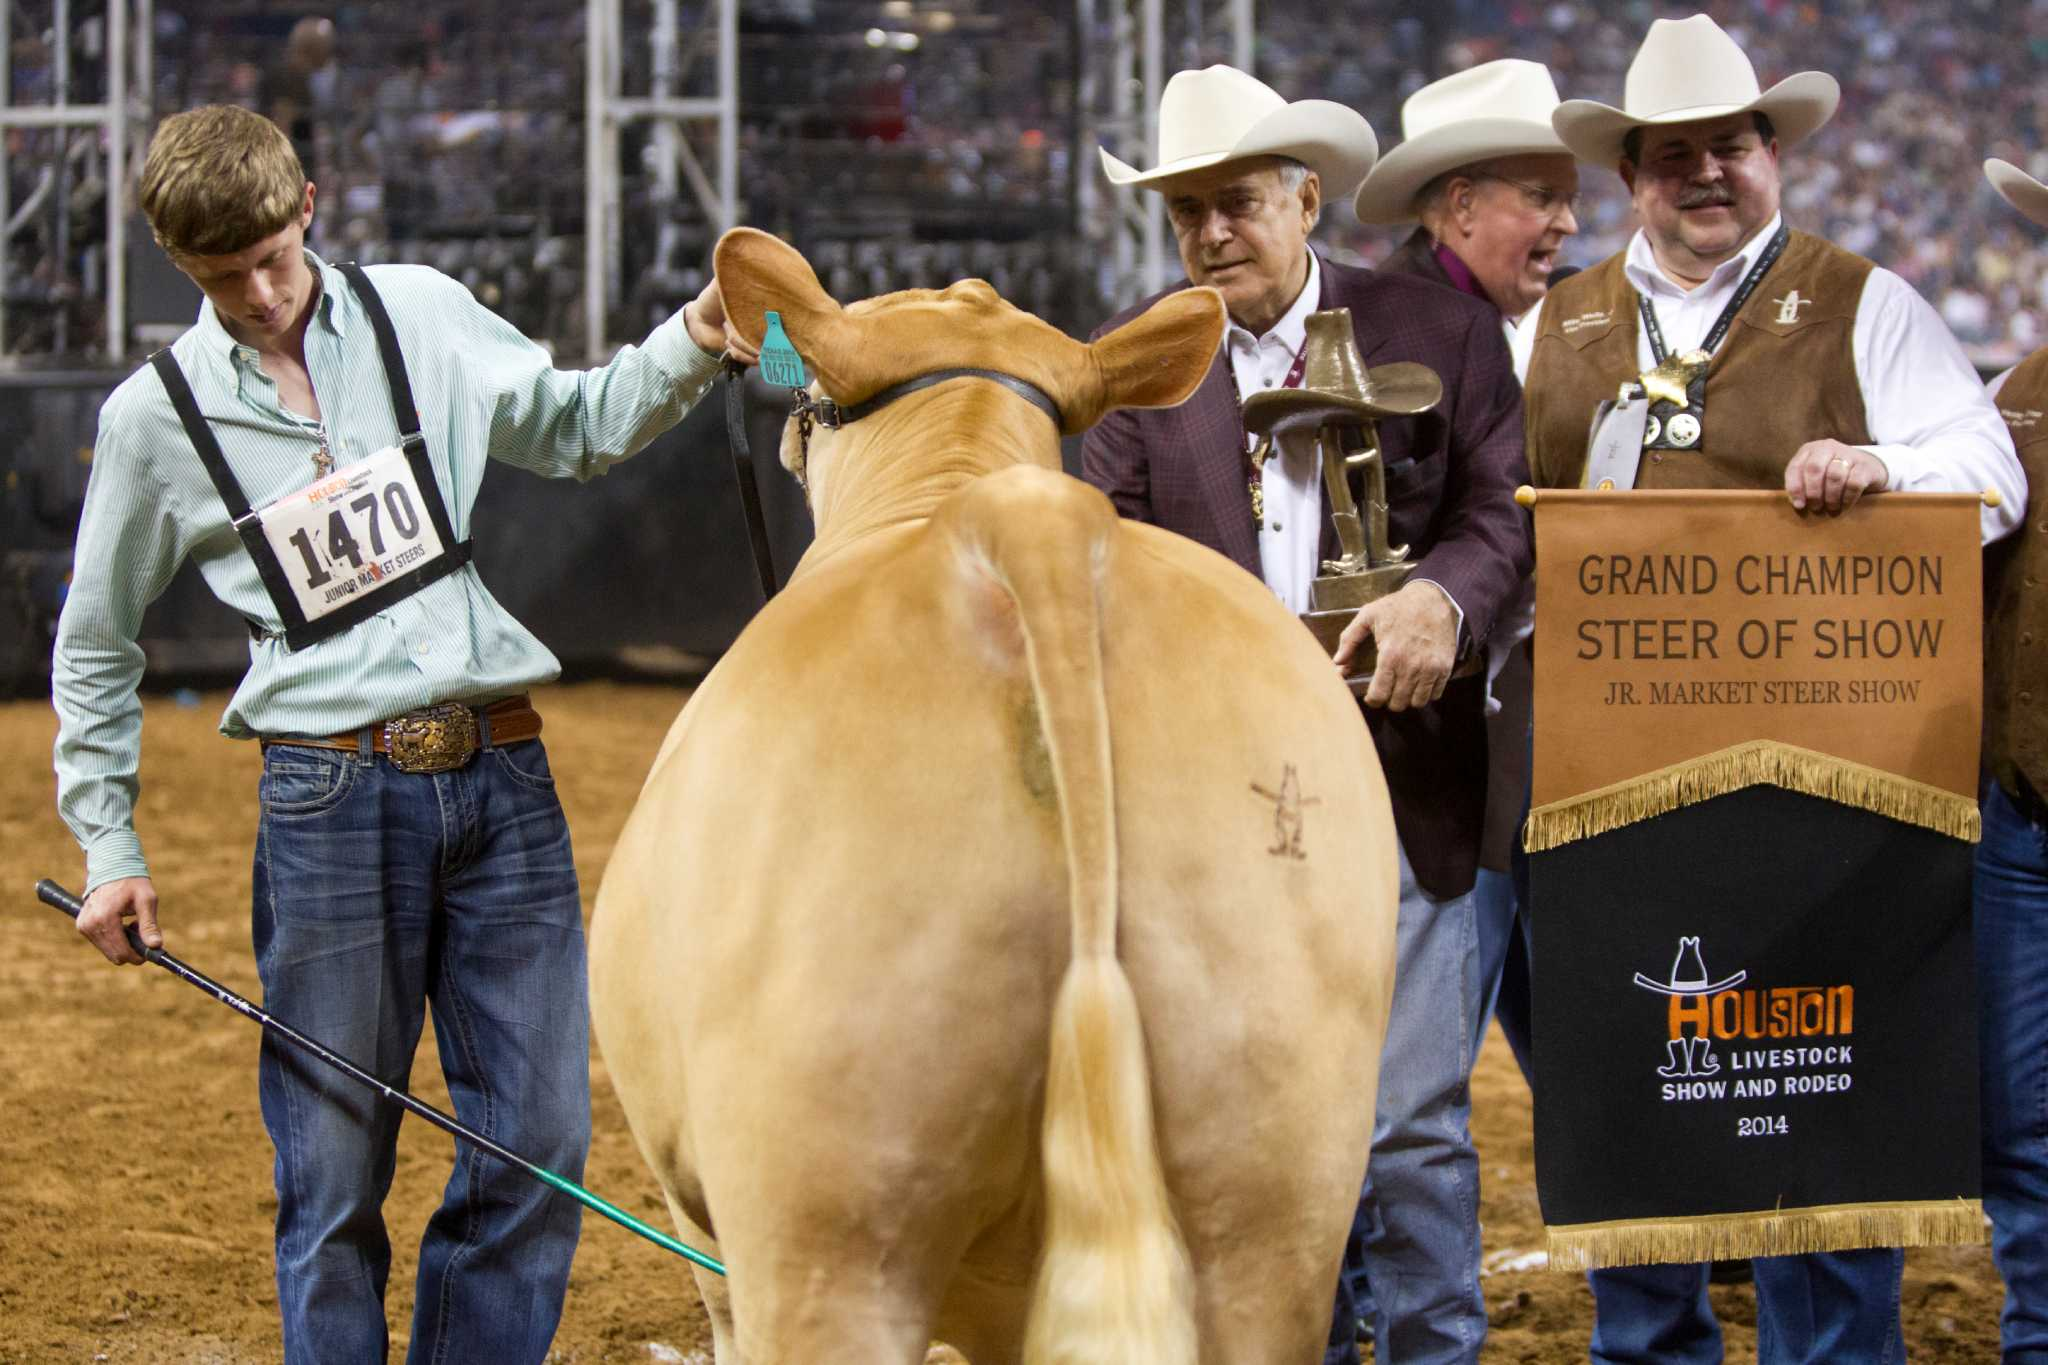 Stanton Teen S Top Steer Draws 400k At Rodeo Auction